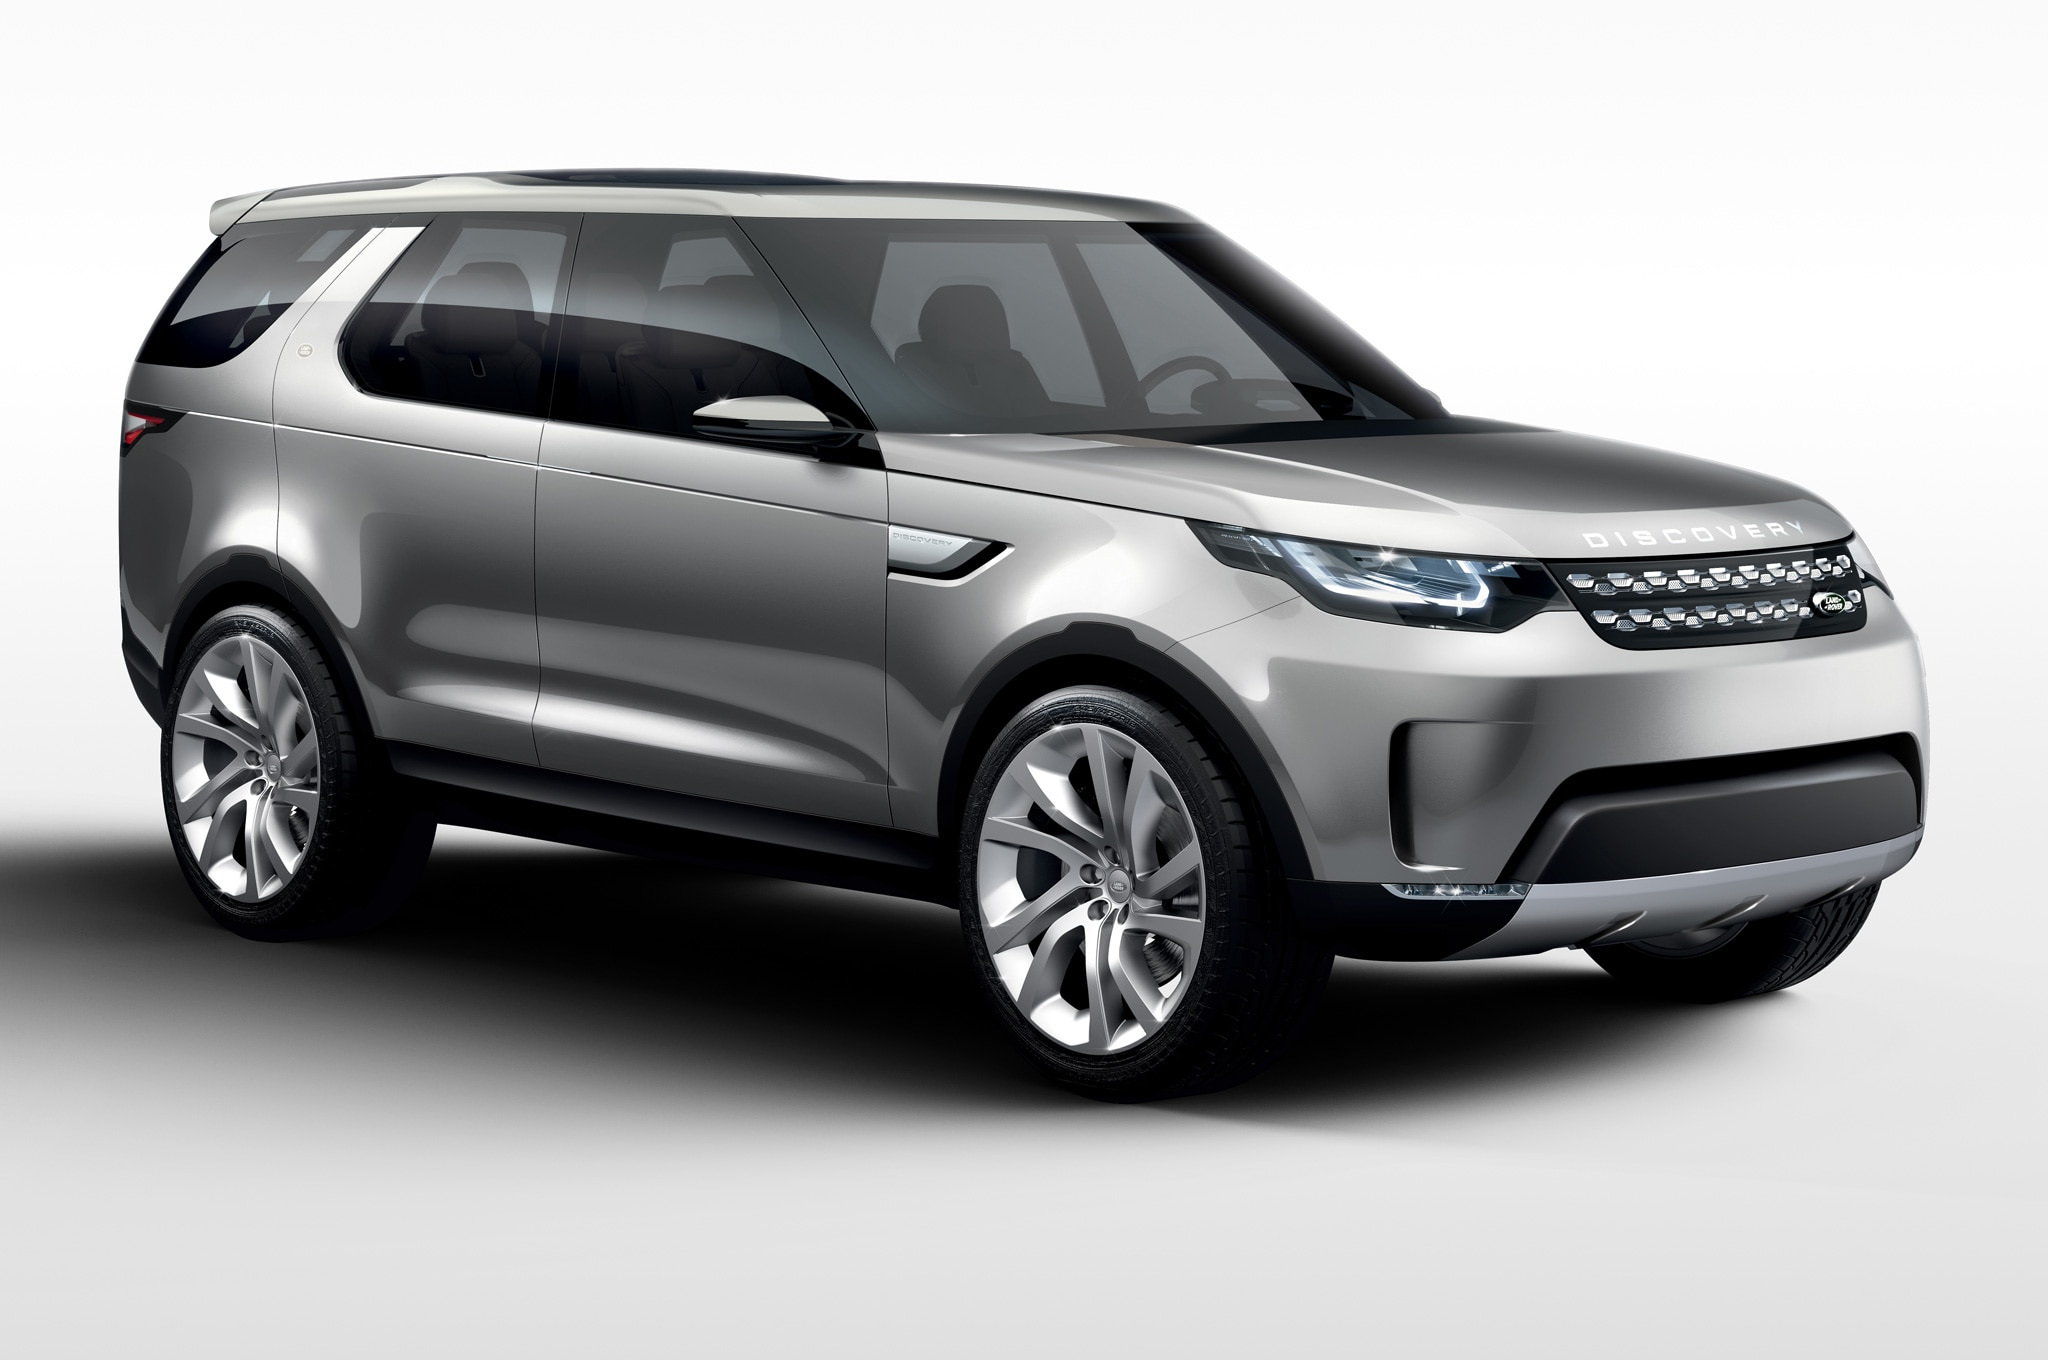 Land Rover Discovery Vision Concept front side view white background